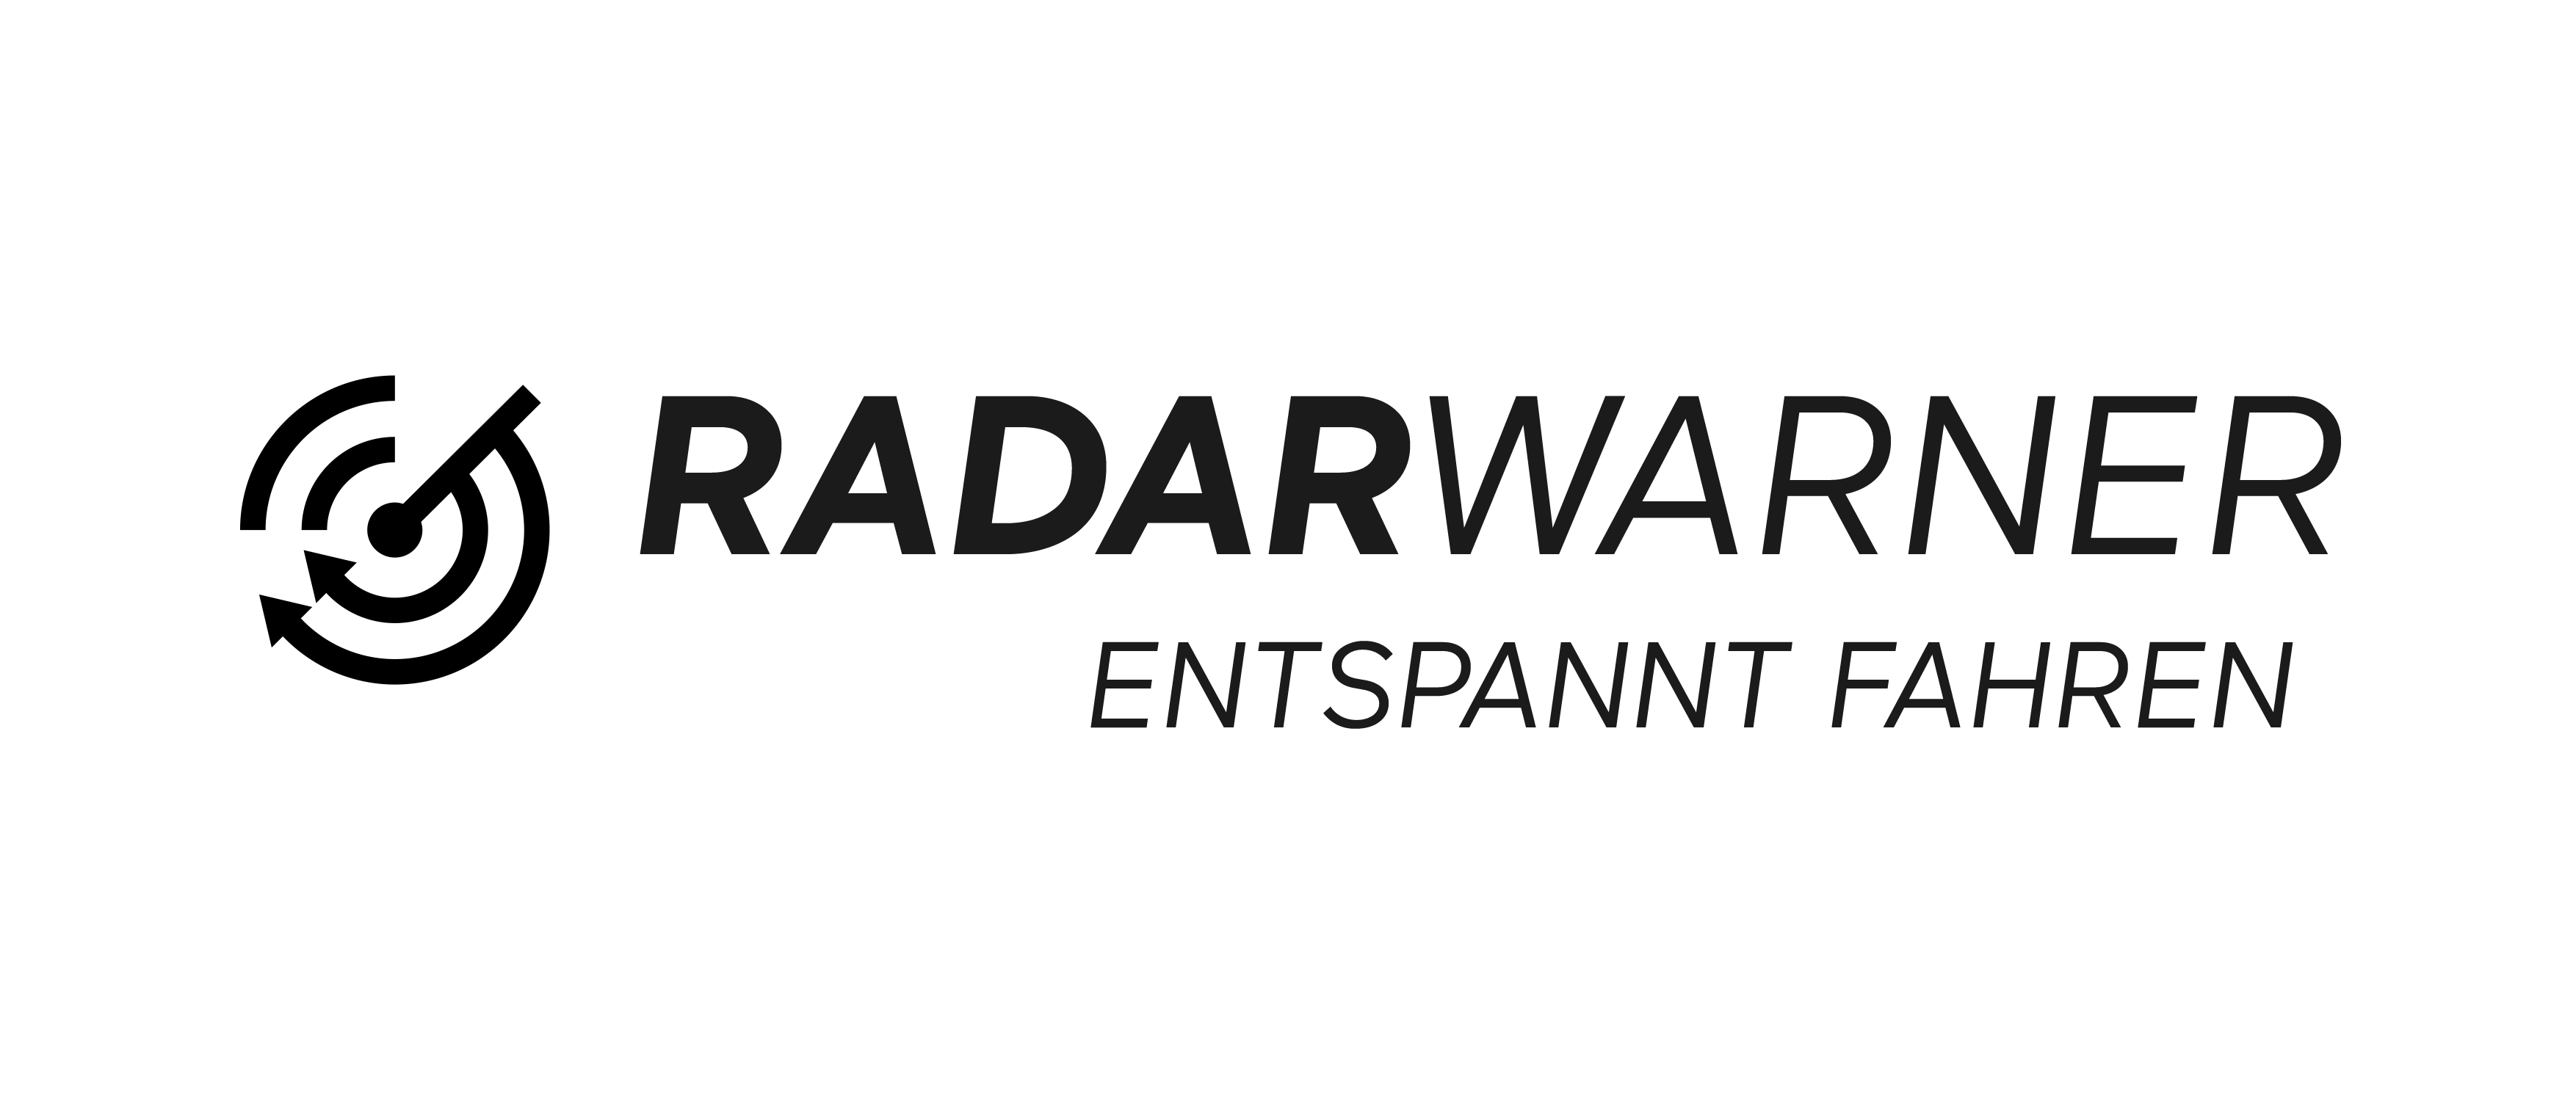 Radarwarner-test